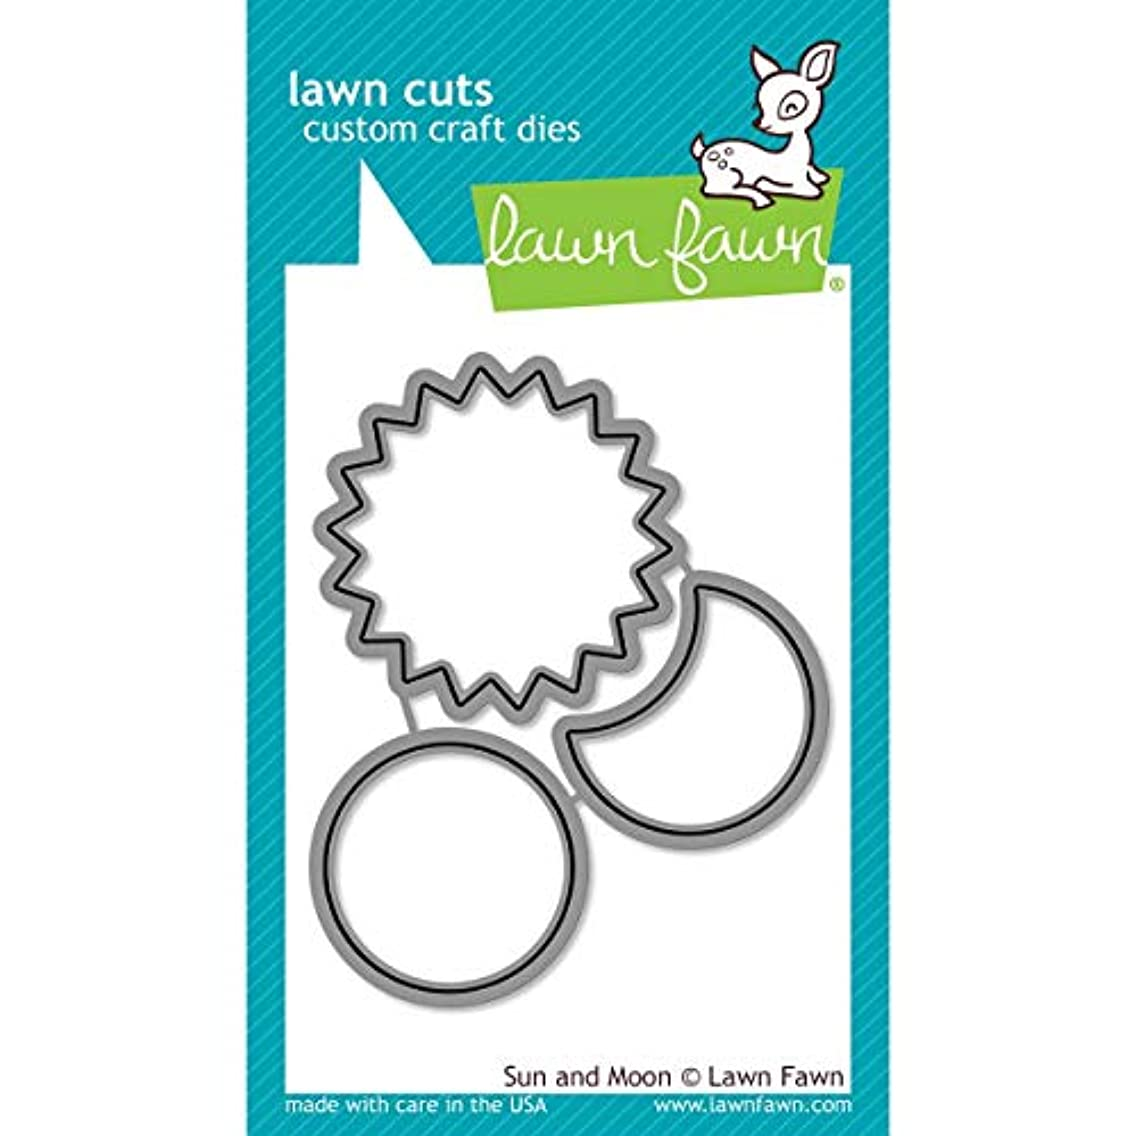 Lawn Fawn Custom Craft Dies - Sun And Moon dies